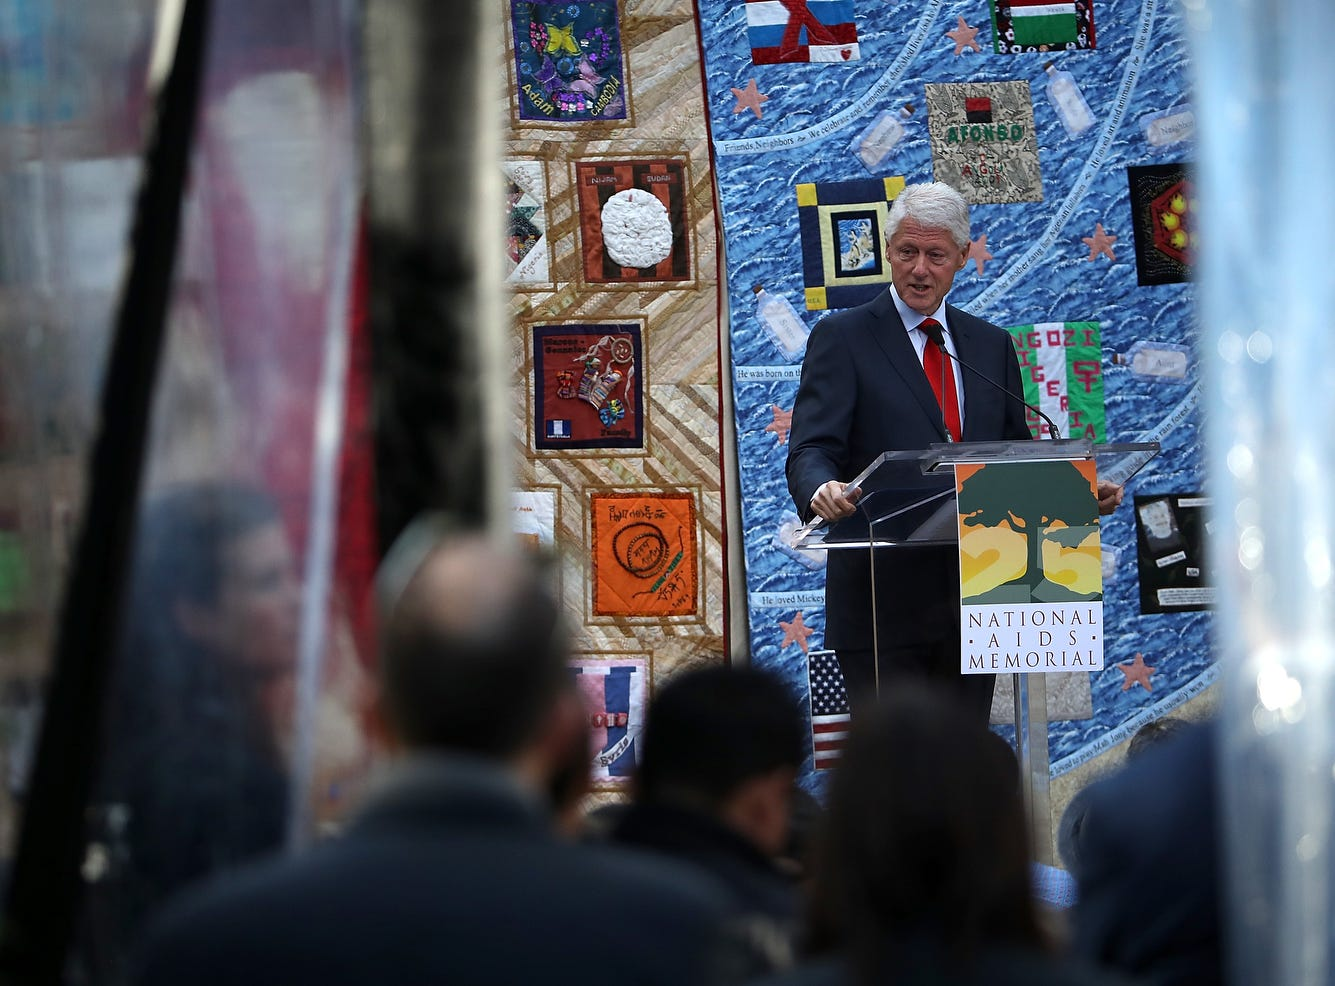 Former U.S. president Bill Clinton delivers the keynote address during the World AIDS Day in San Francisco.